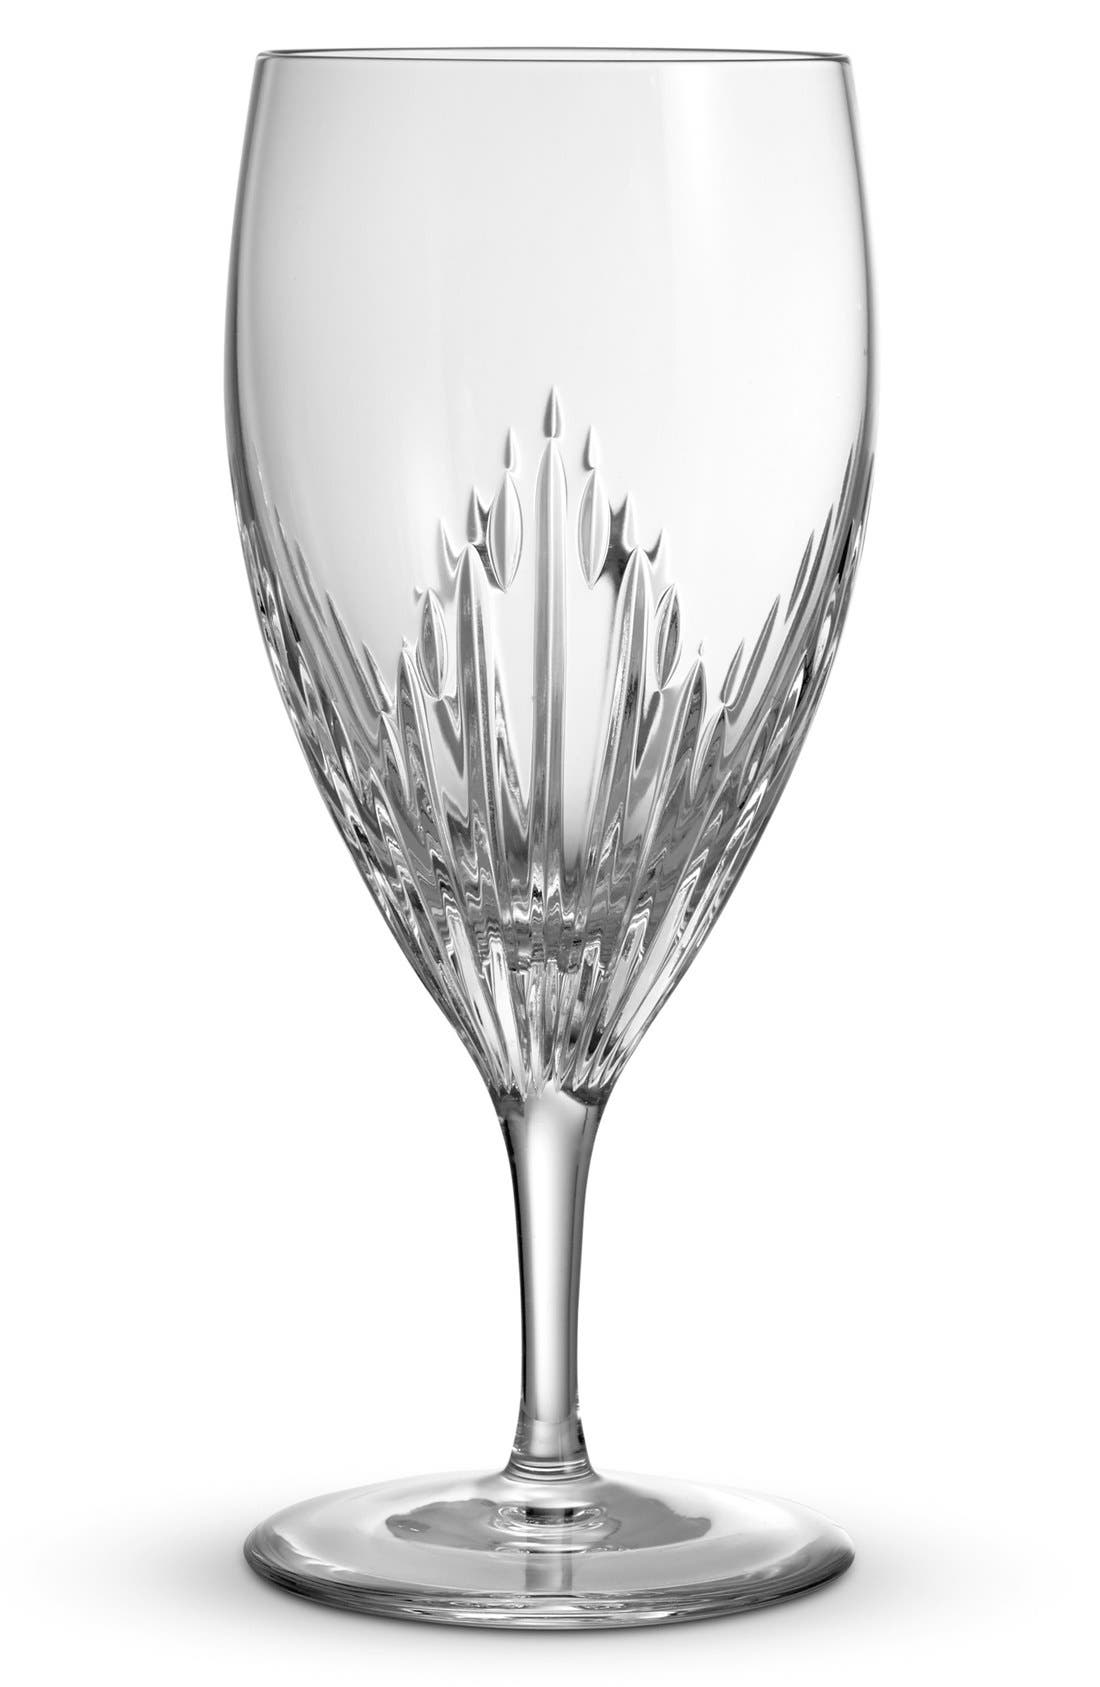 MoniqueLhuillierWaterford 'Stardust' Lead Crystal Iced Beverage Glass,                             Main thumbnail 1, color,                             100